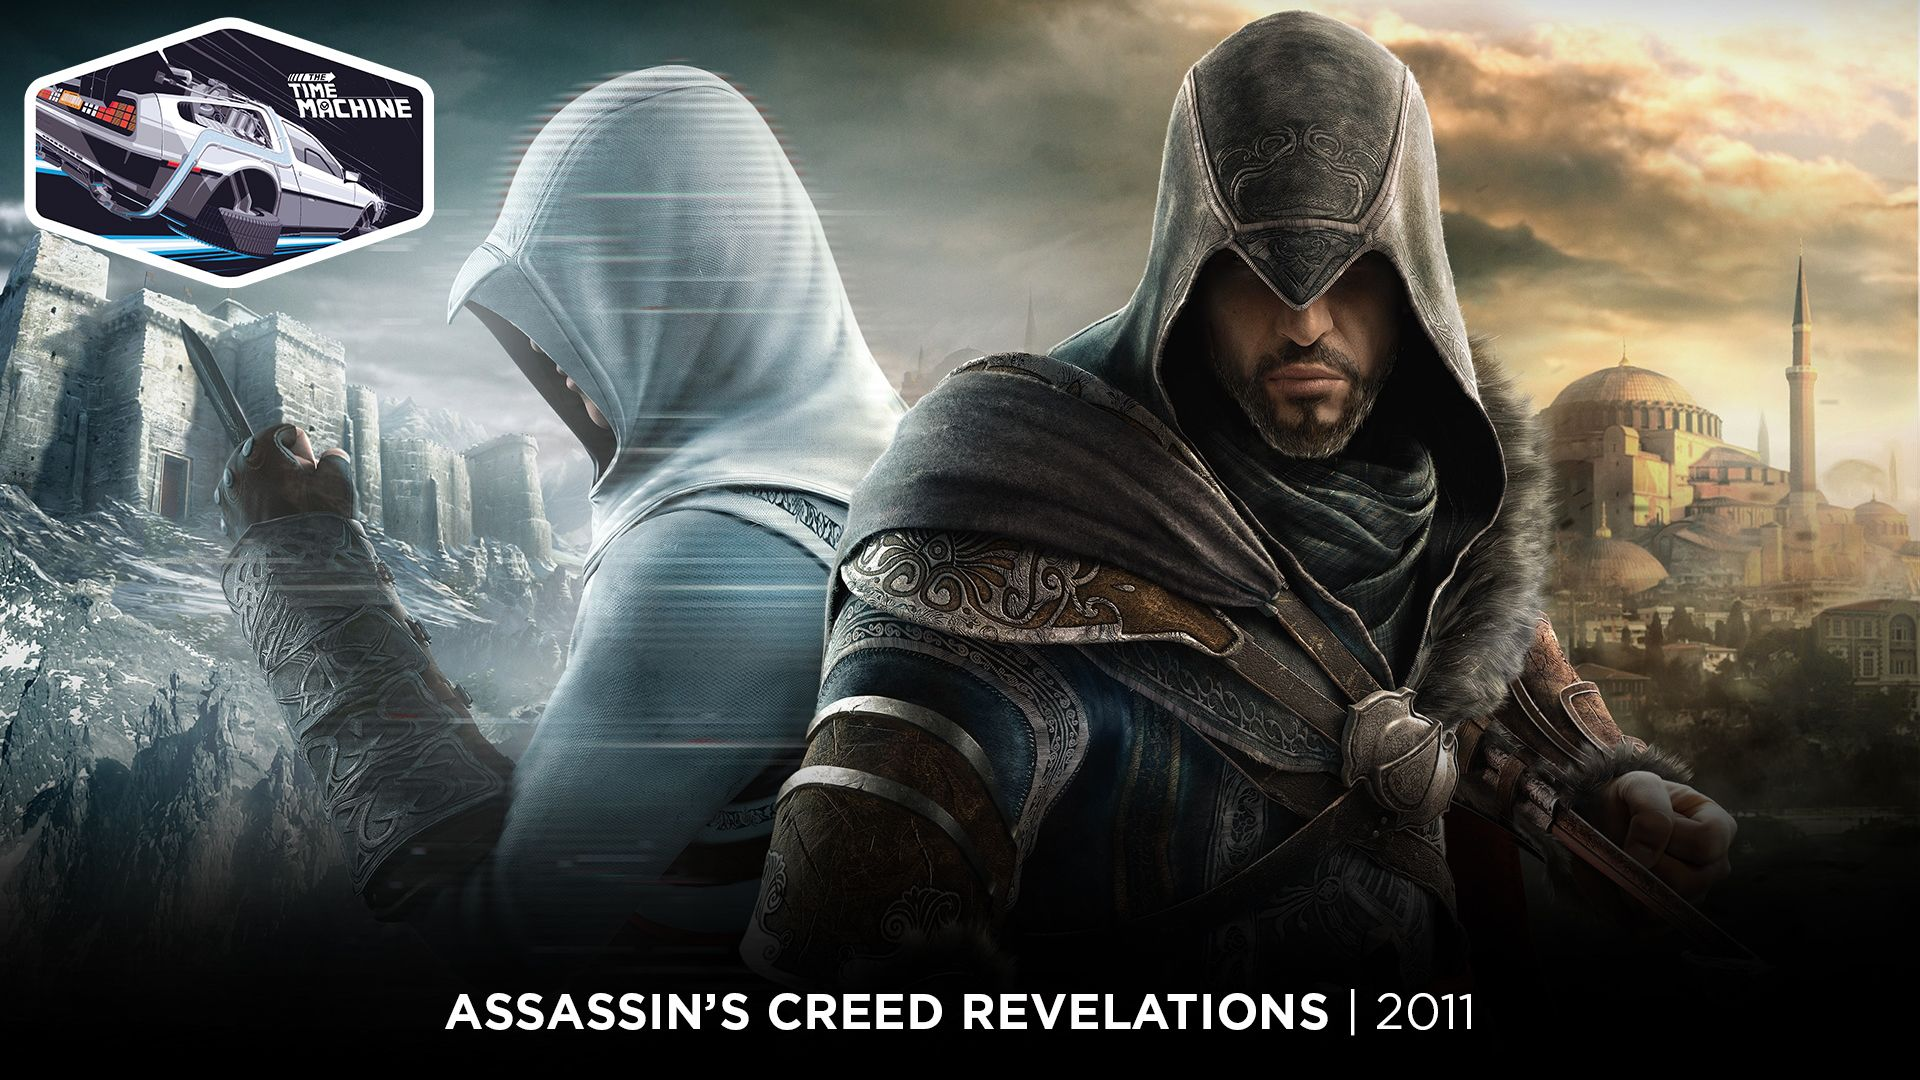 The Time Machine - Assassin's Creed Revelations